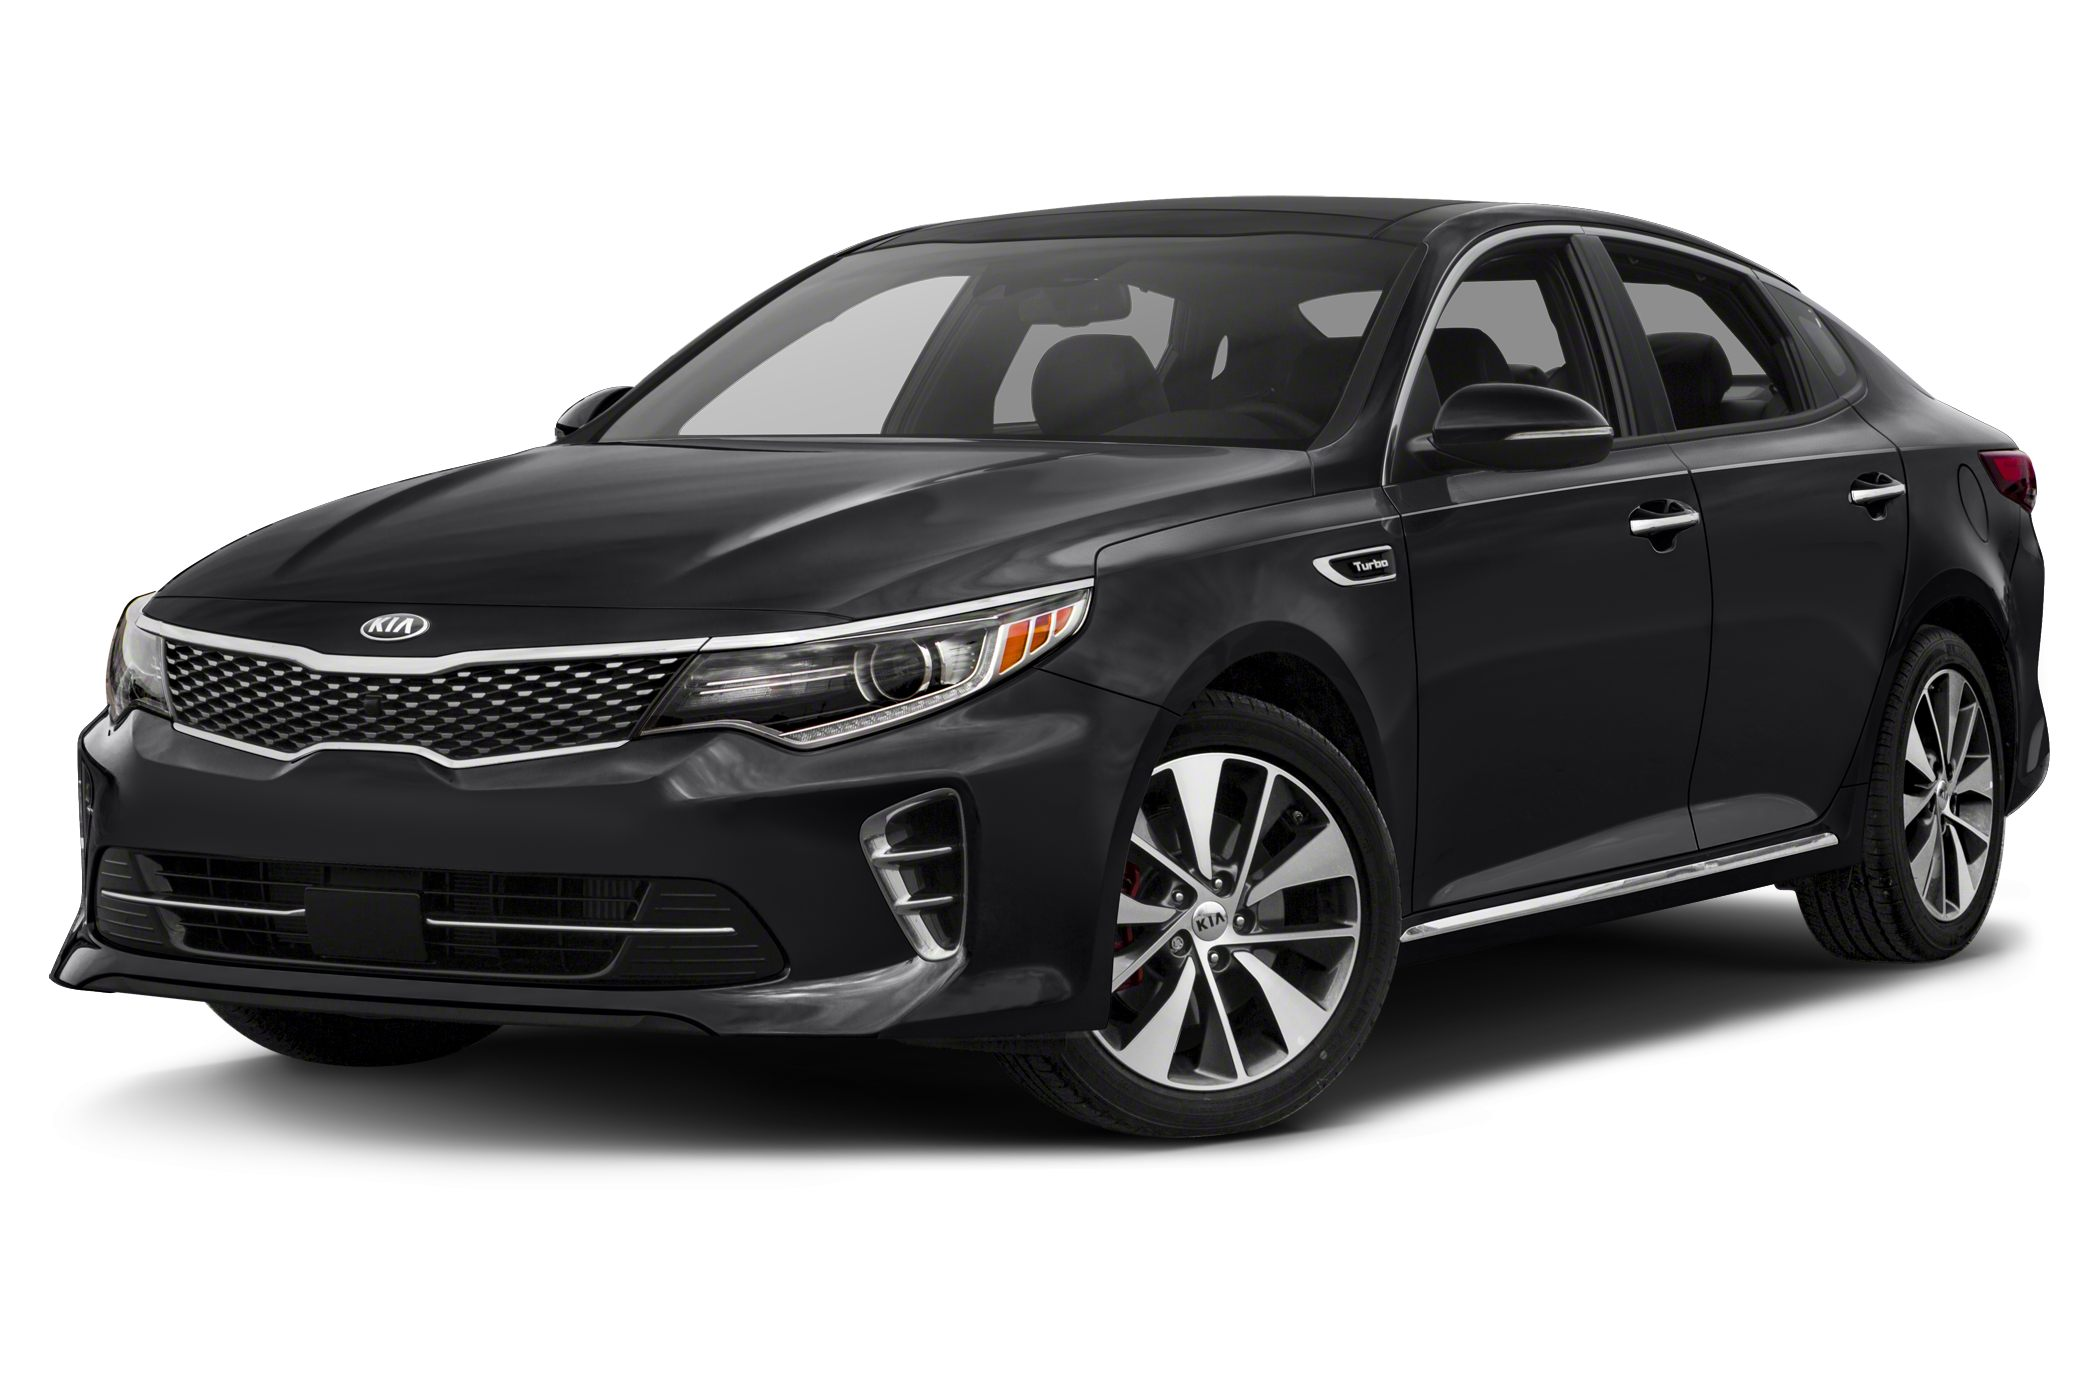 2018 Kia Optima SX Turbo Miles 4Color Black Stock K17464 VIN 5XXGW4L27JG241443